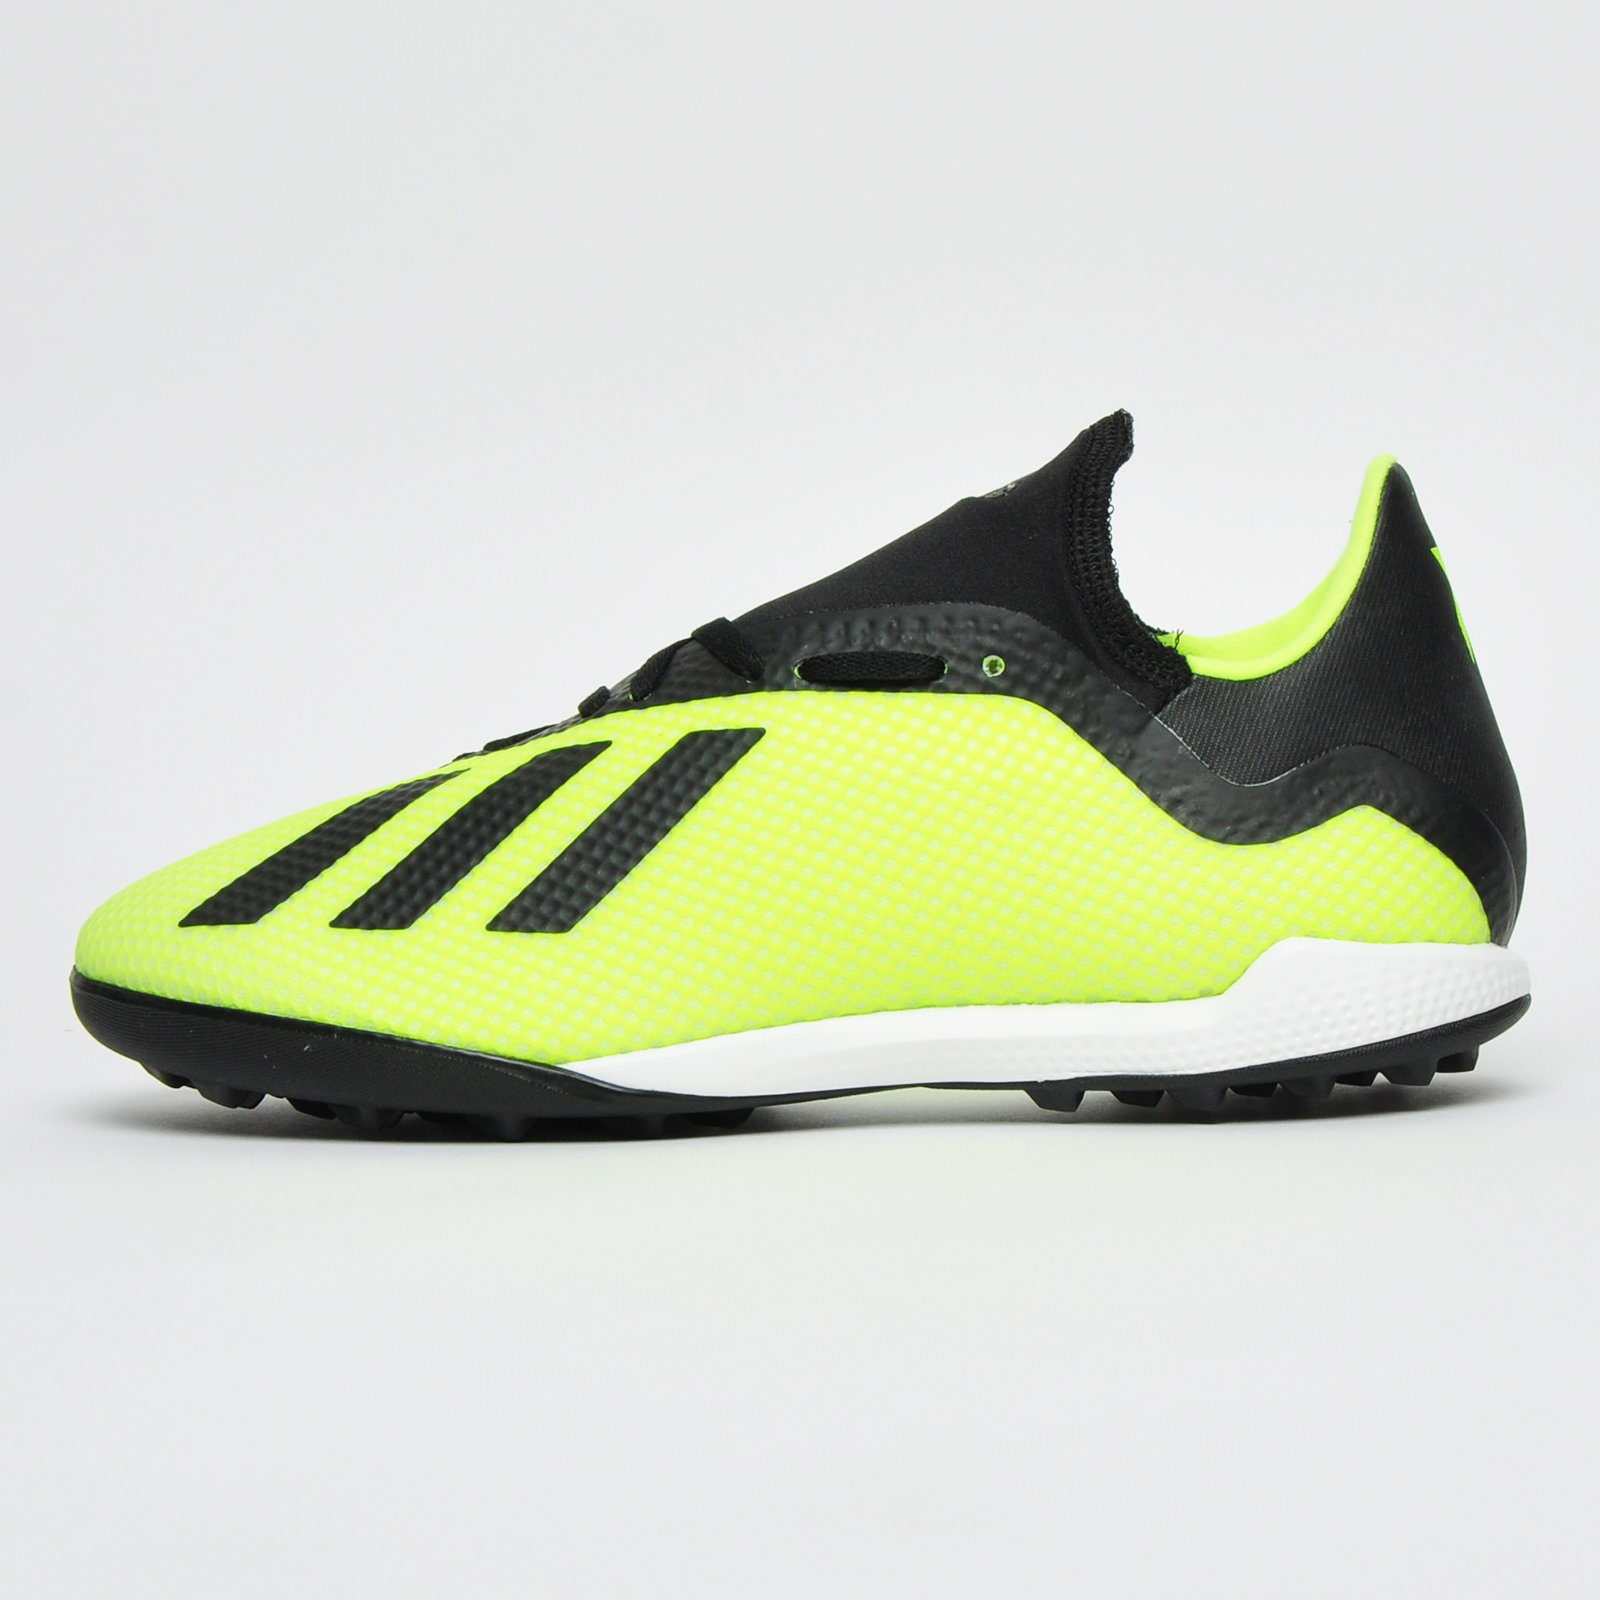 Détails sur Adidas X Tango 18.3 Tf Homme Pro Astro Turf Football Baskets